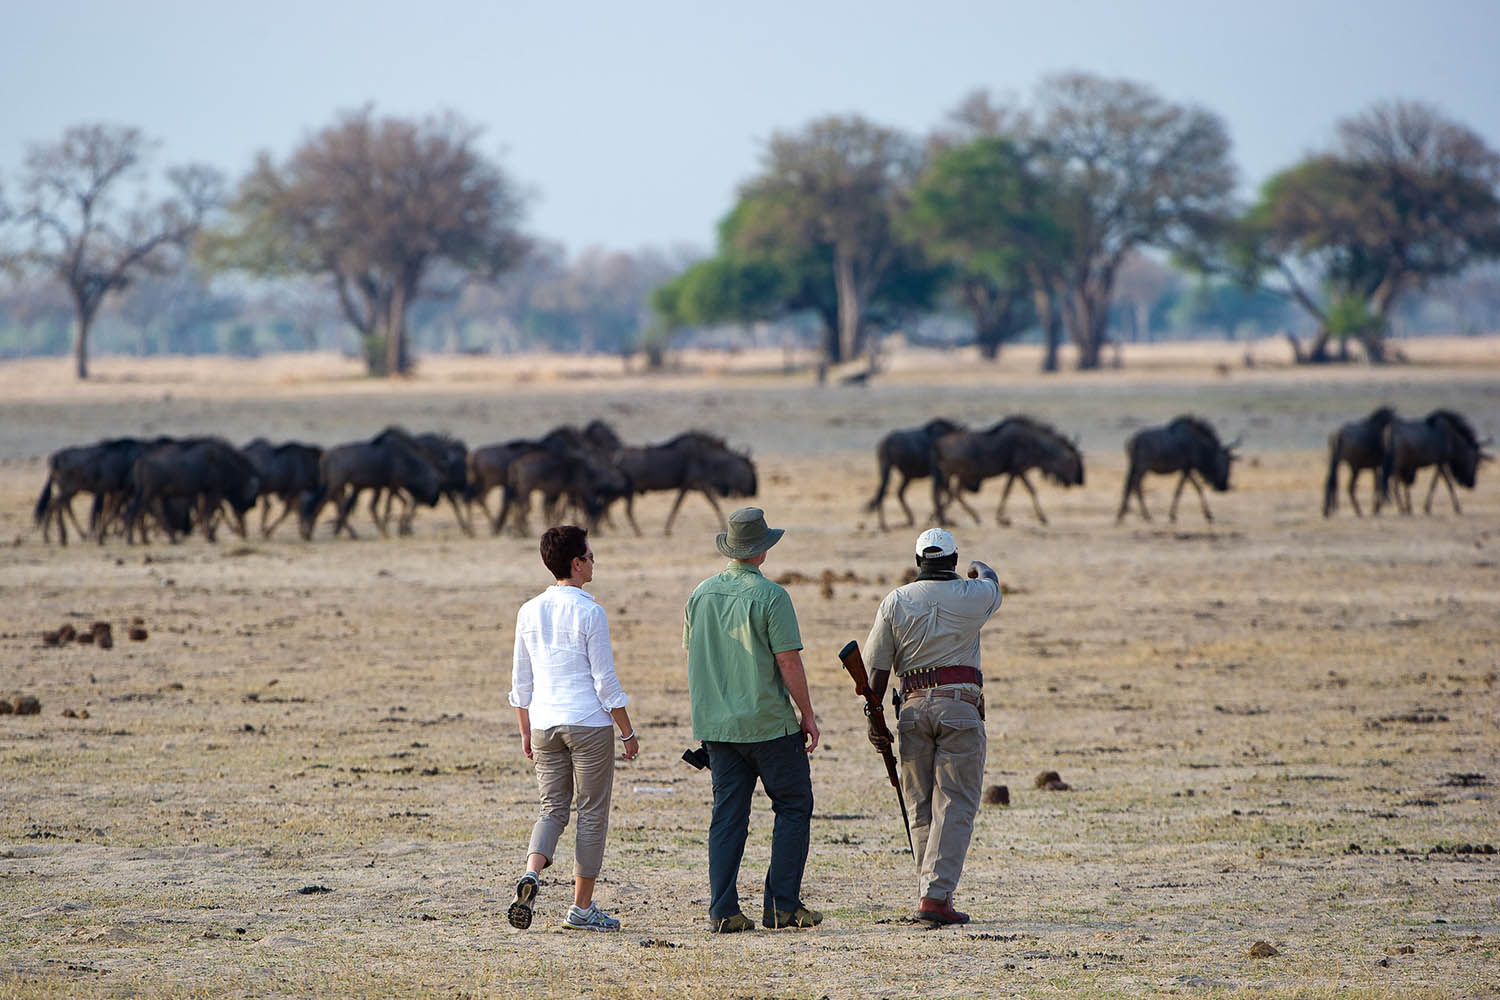 davisons camp hwange-national-park-zimbabwe-lodges-wilderness-activities-walking-safari